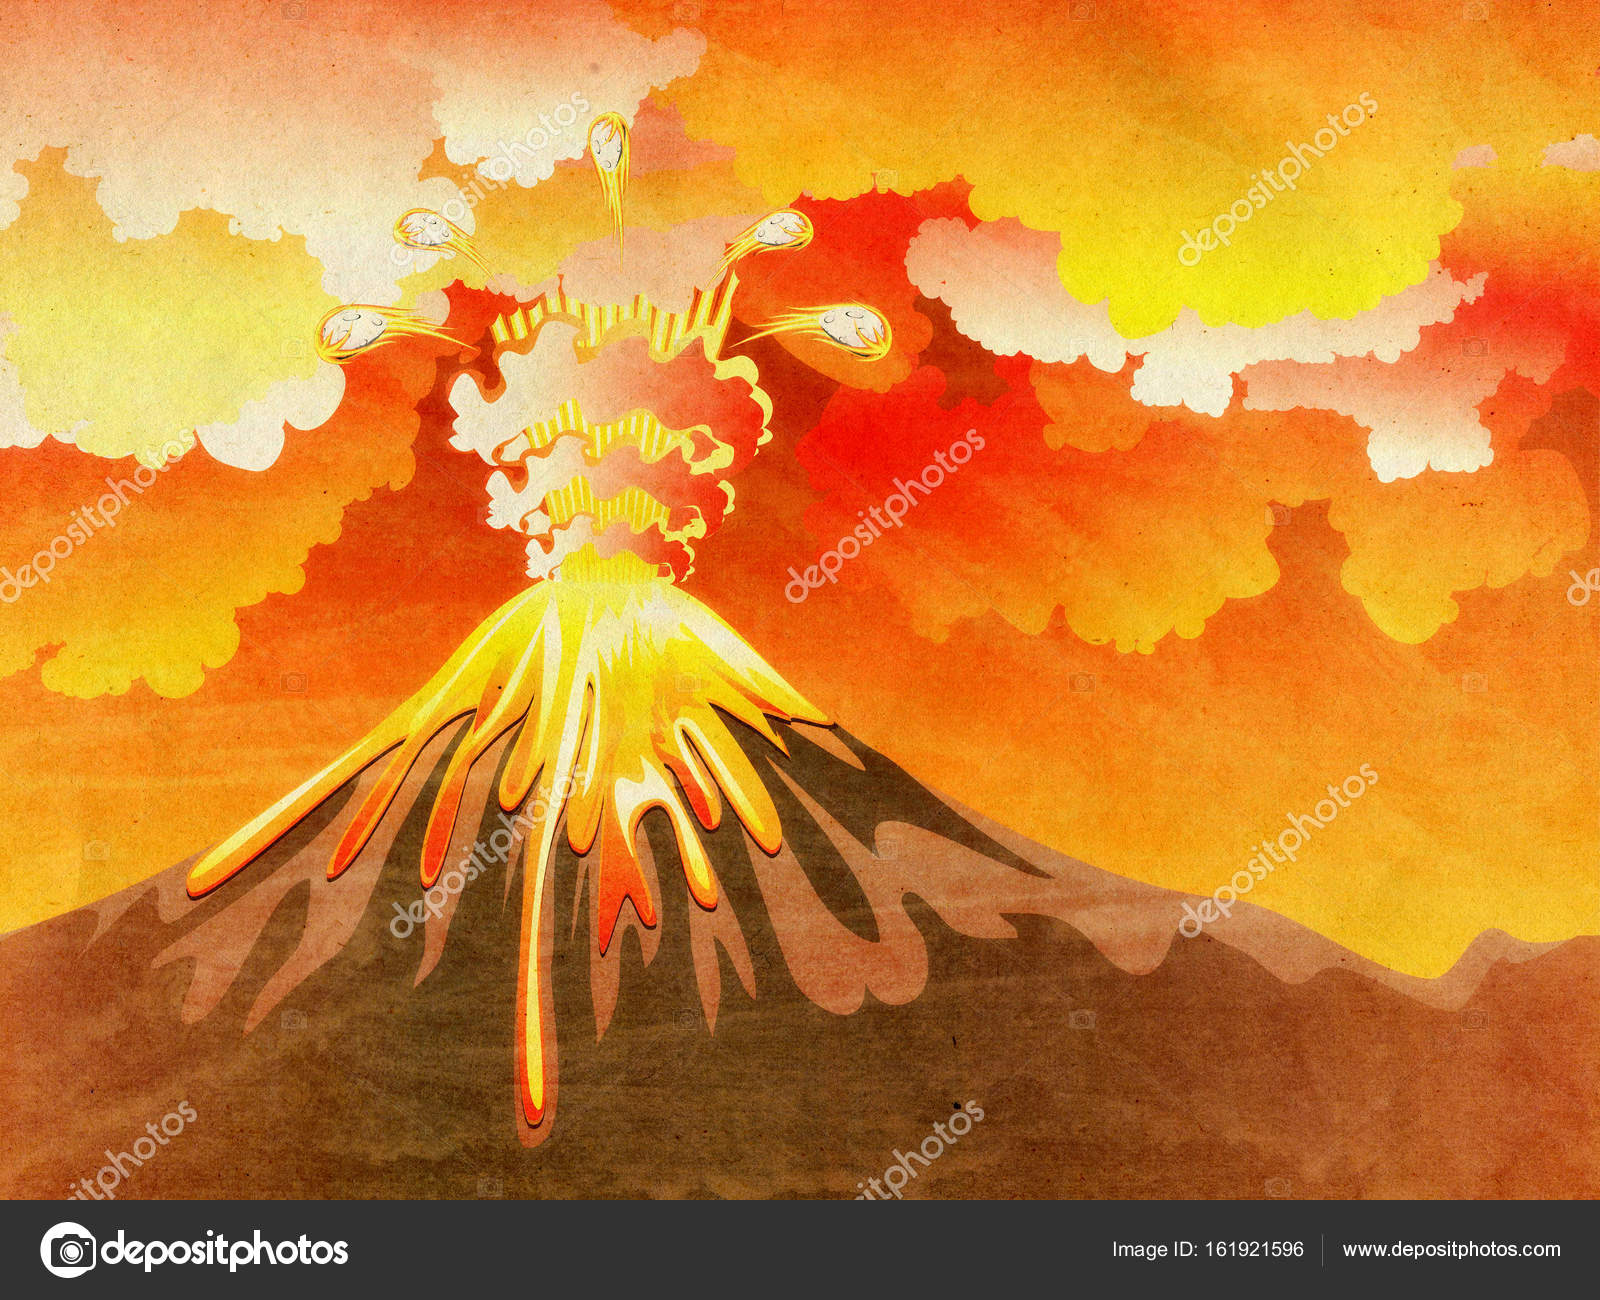 Image result for volcano erupting painting